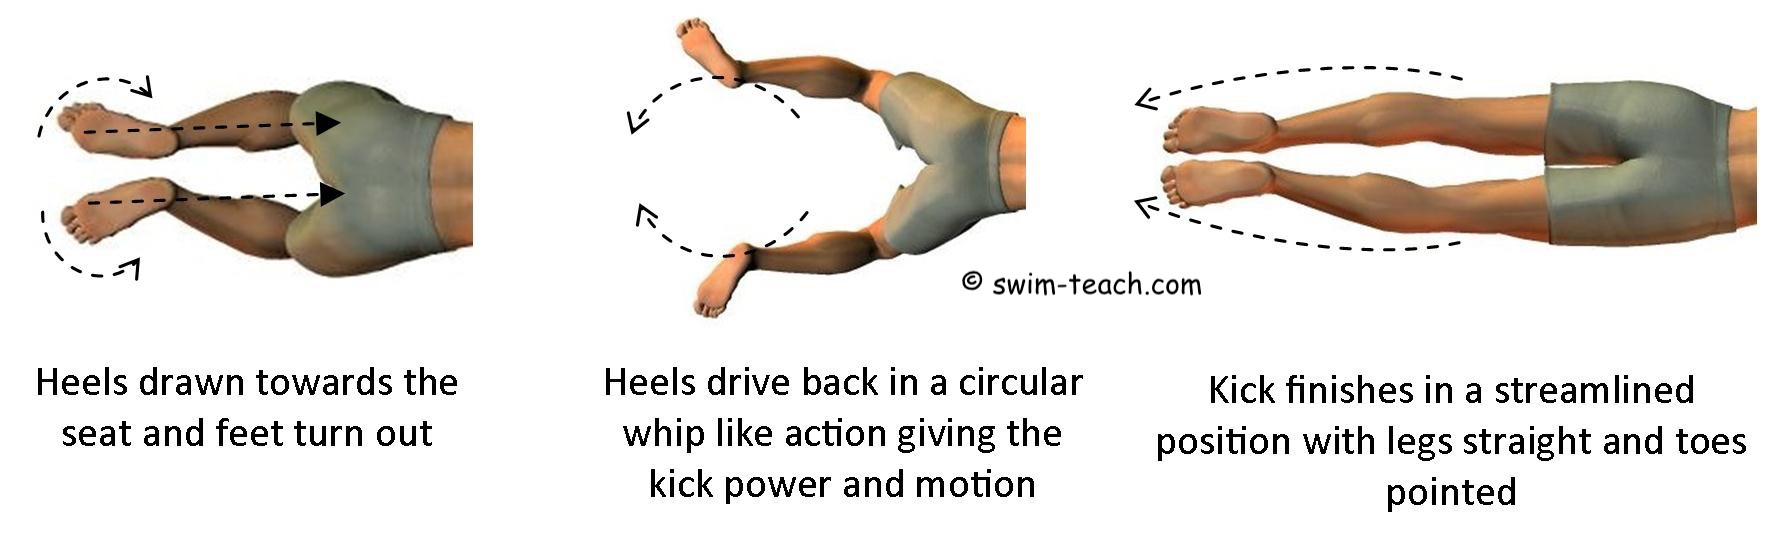 Breaststroke leg kick action showing circular whip kick